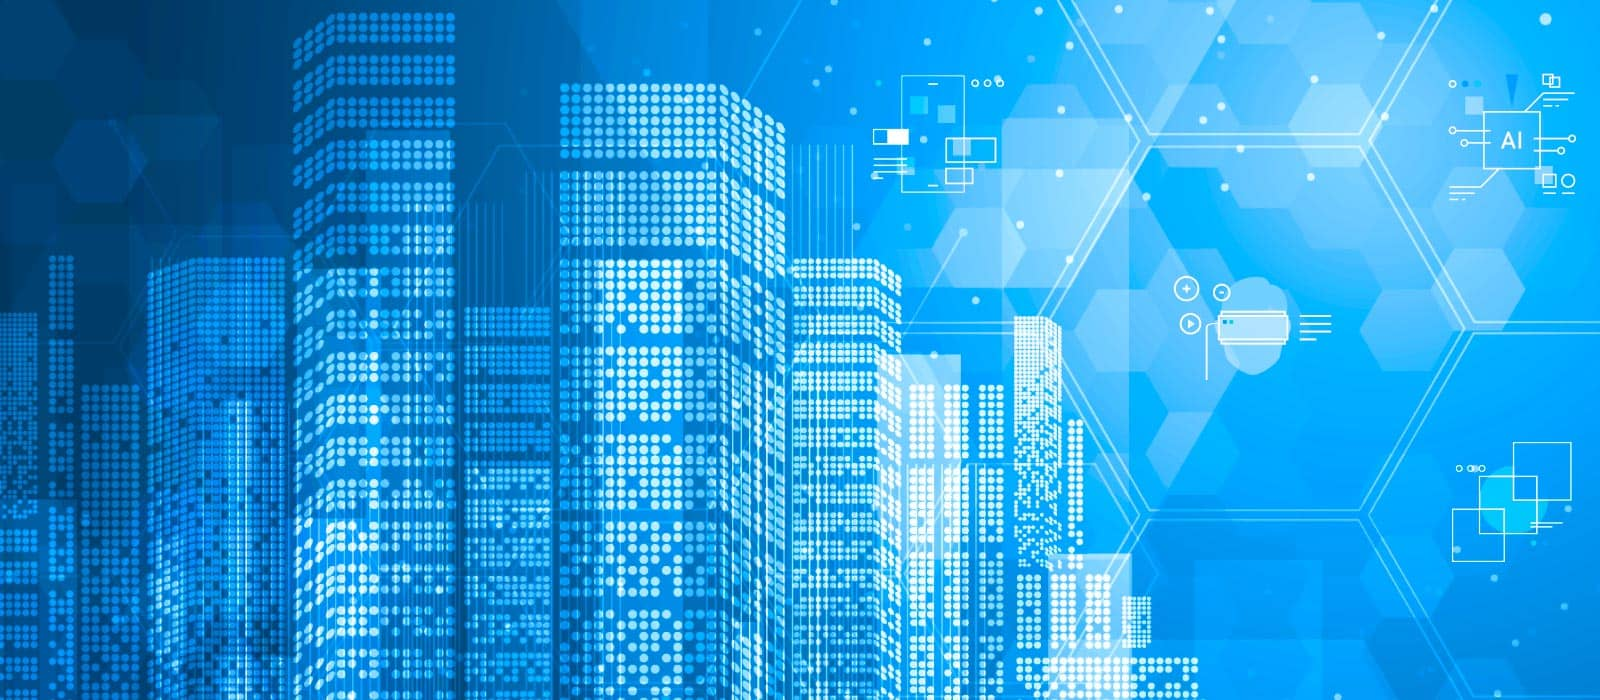 Real Estate Trends in Digital Era. What to expect in 2020 and Beyond